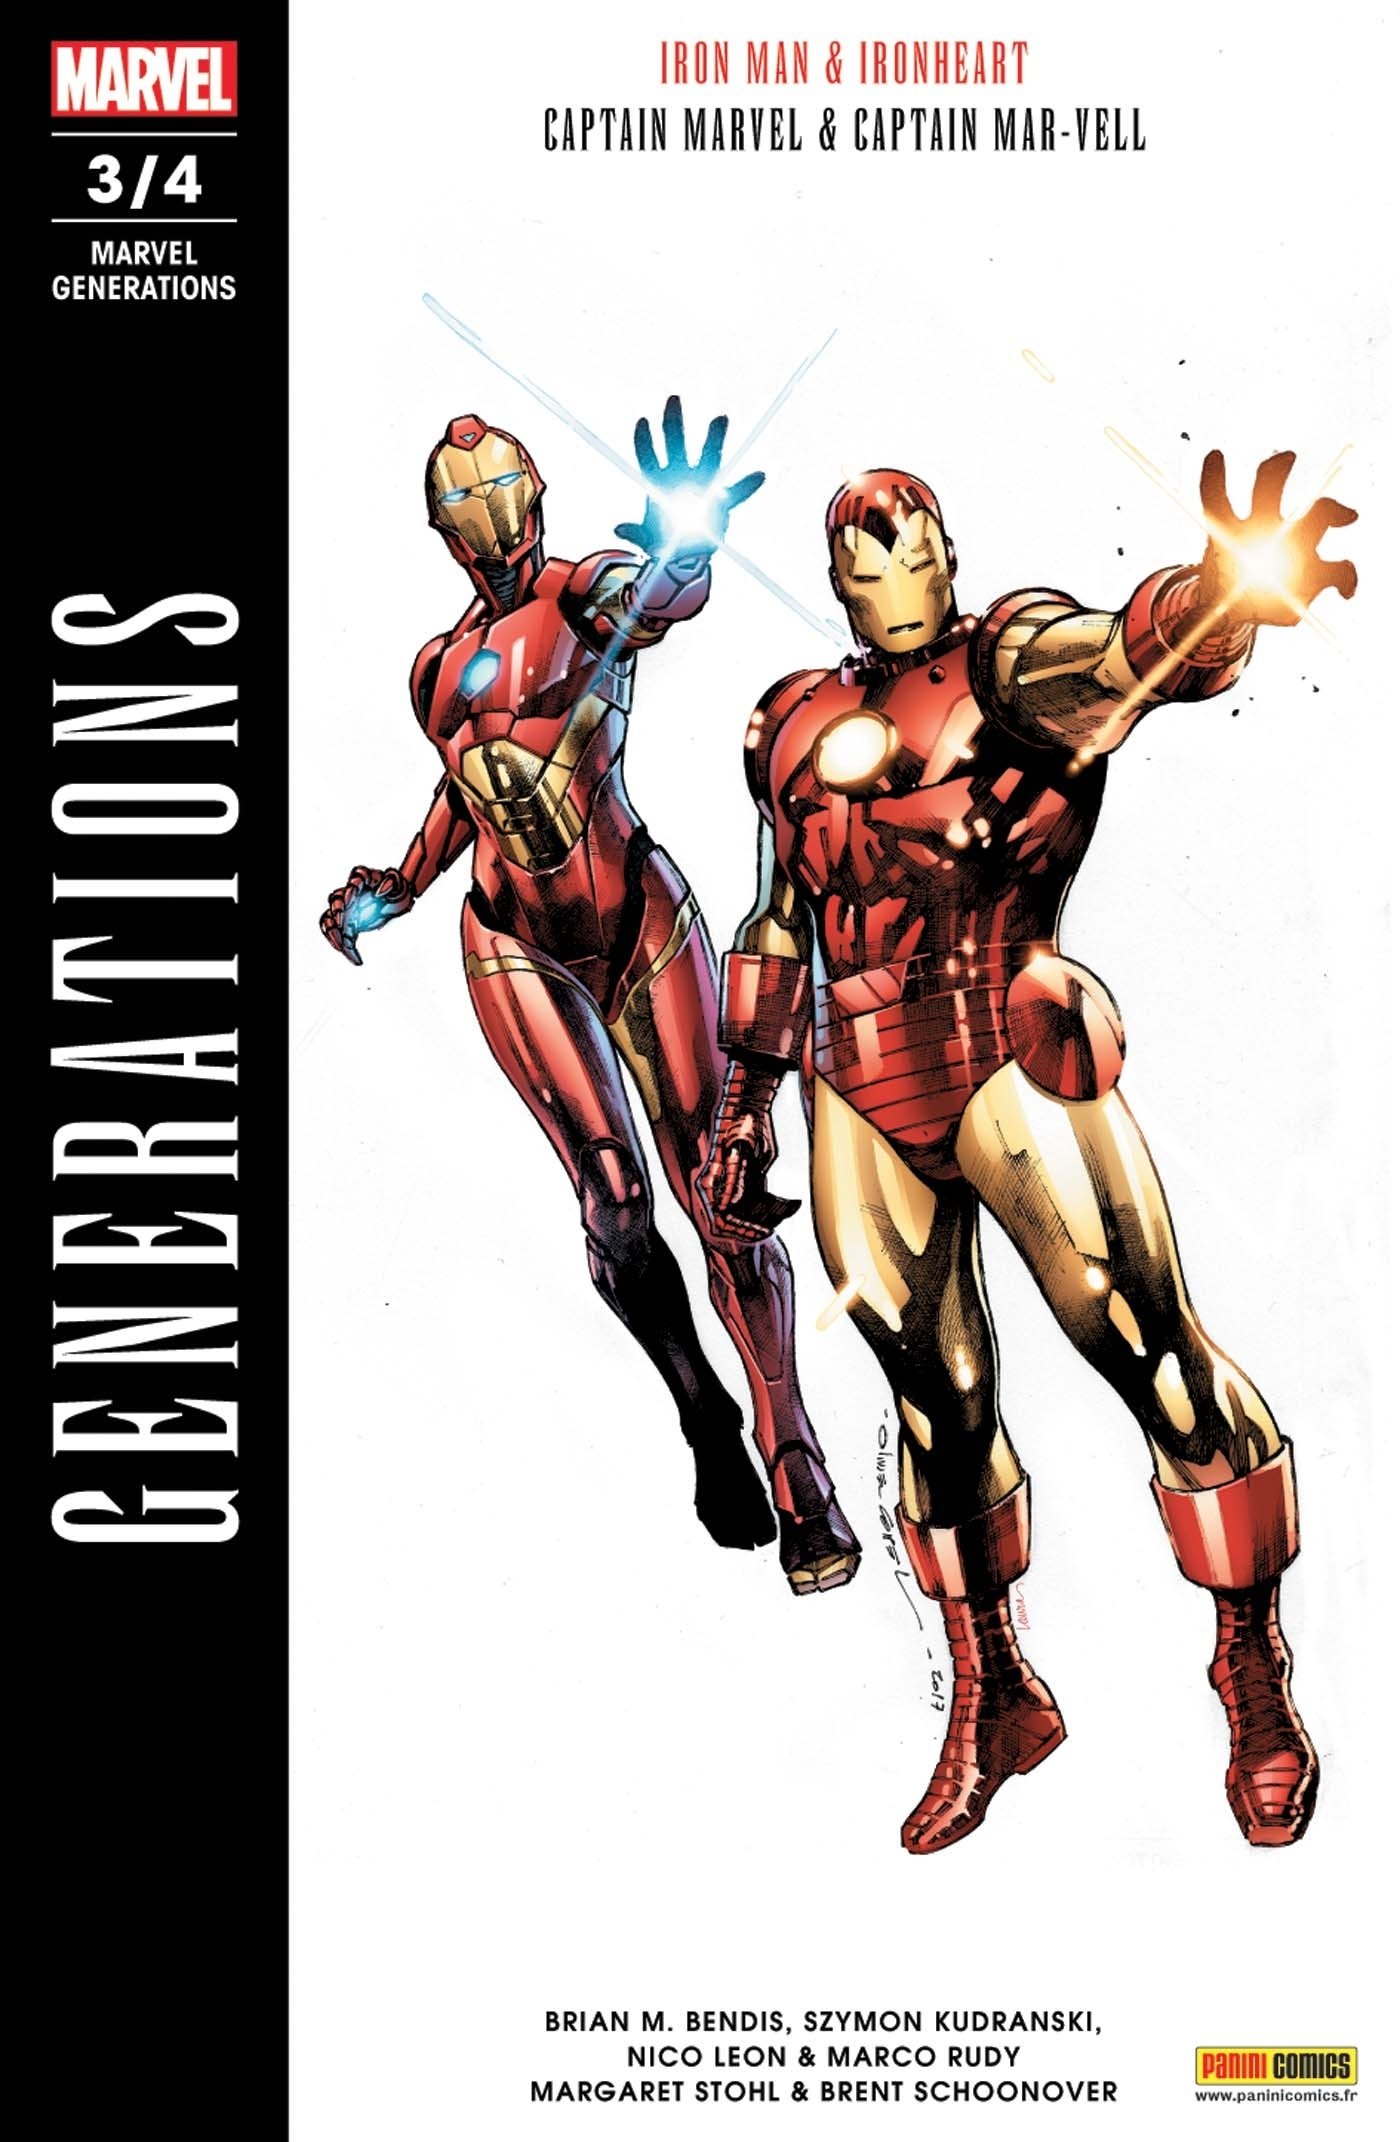 MARVEL GENERATIONS N 3